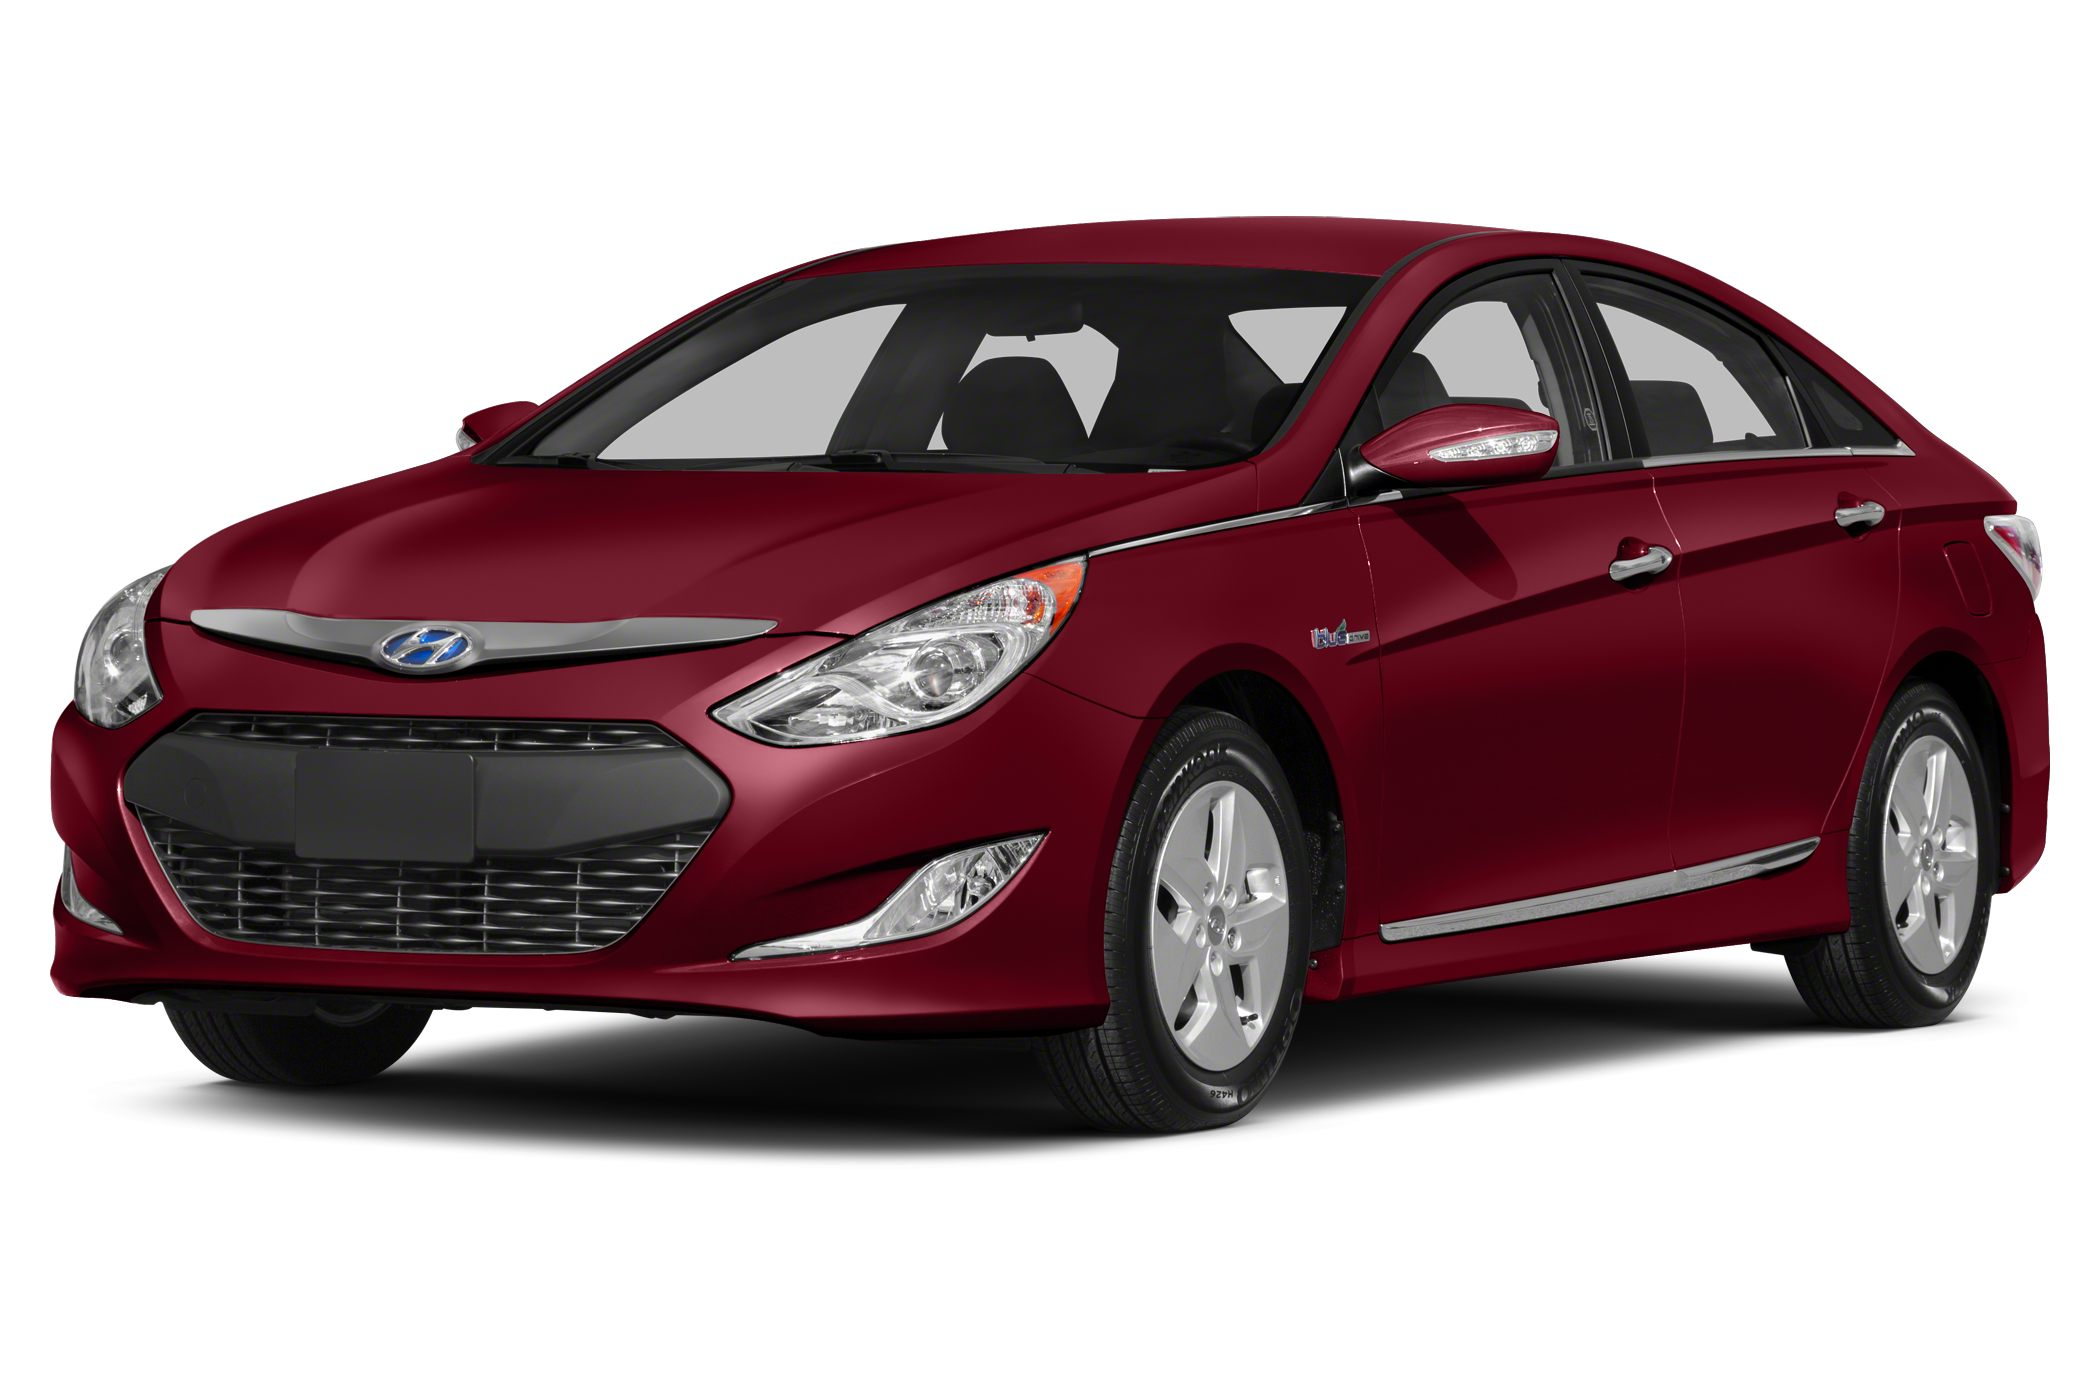 2015 Hyundai Sonata Hybrid Limited Sedan for sale in Birmingham for $32,740 with 16 miles.